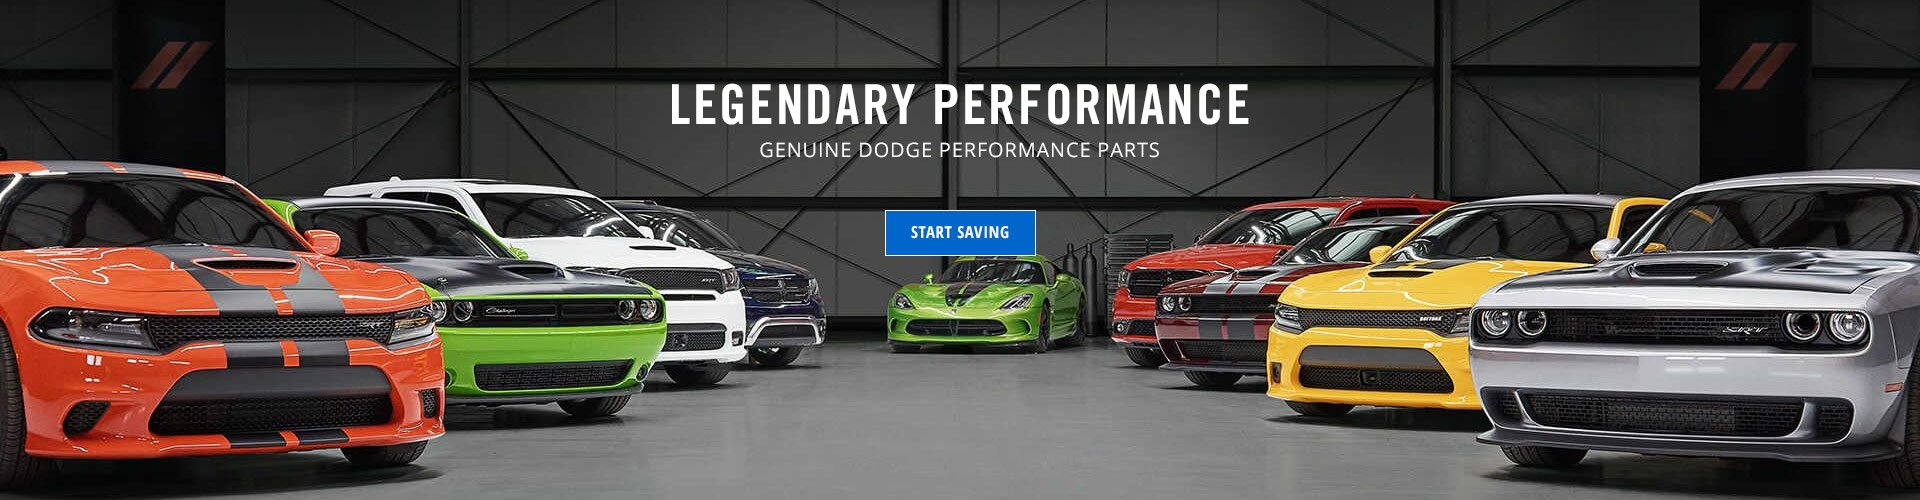 OEM Dodge Performance Parts